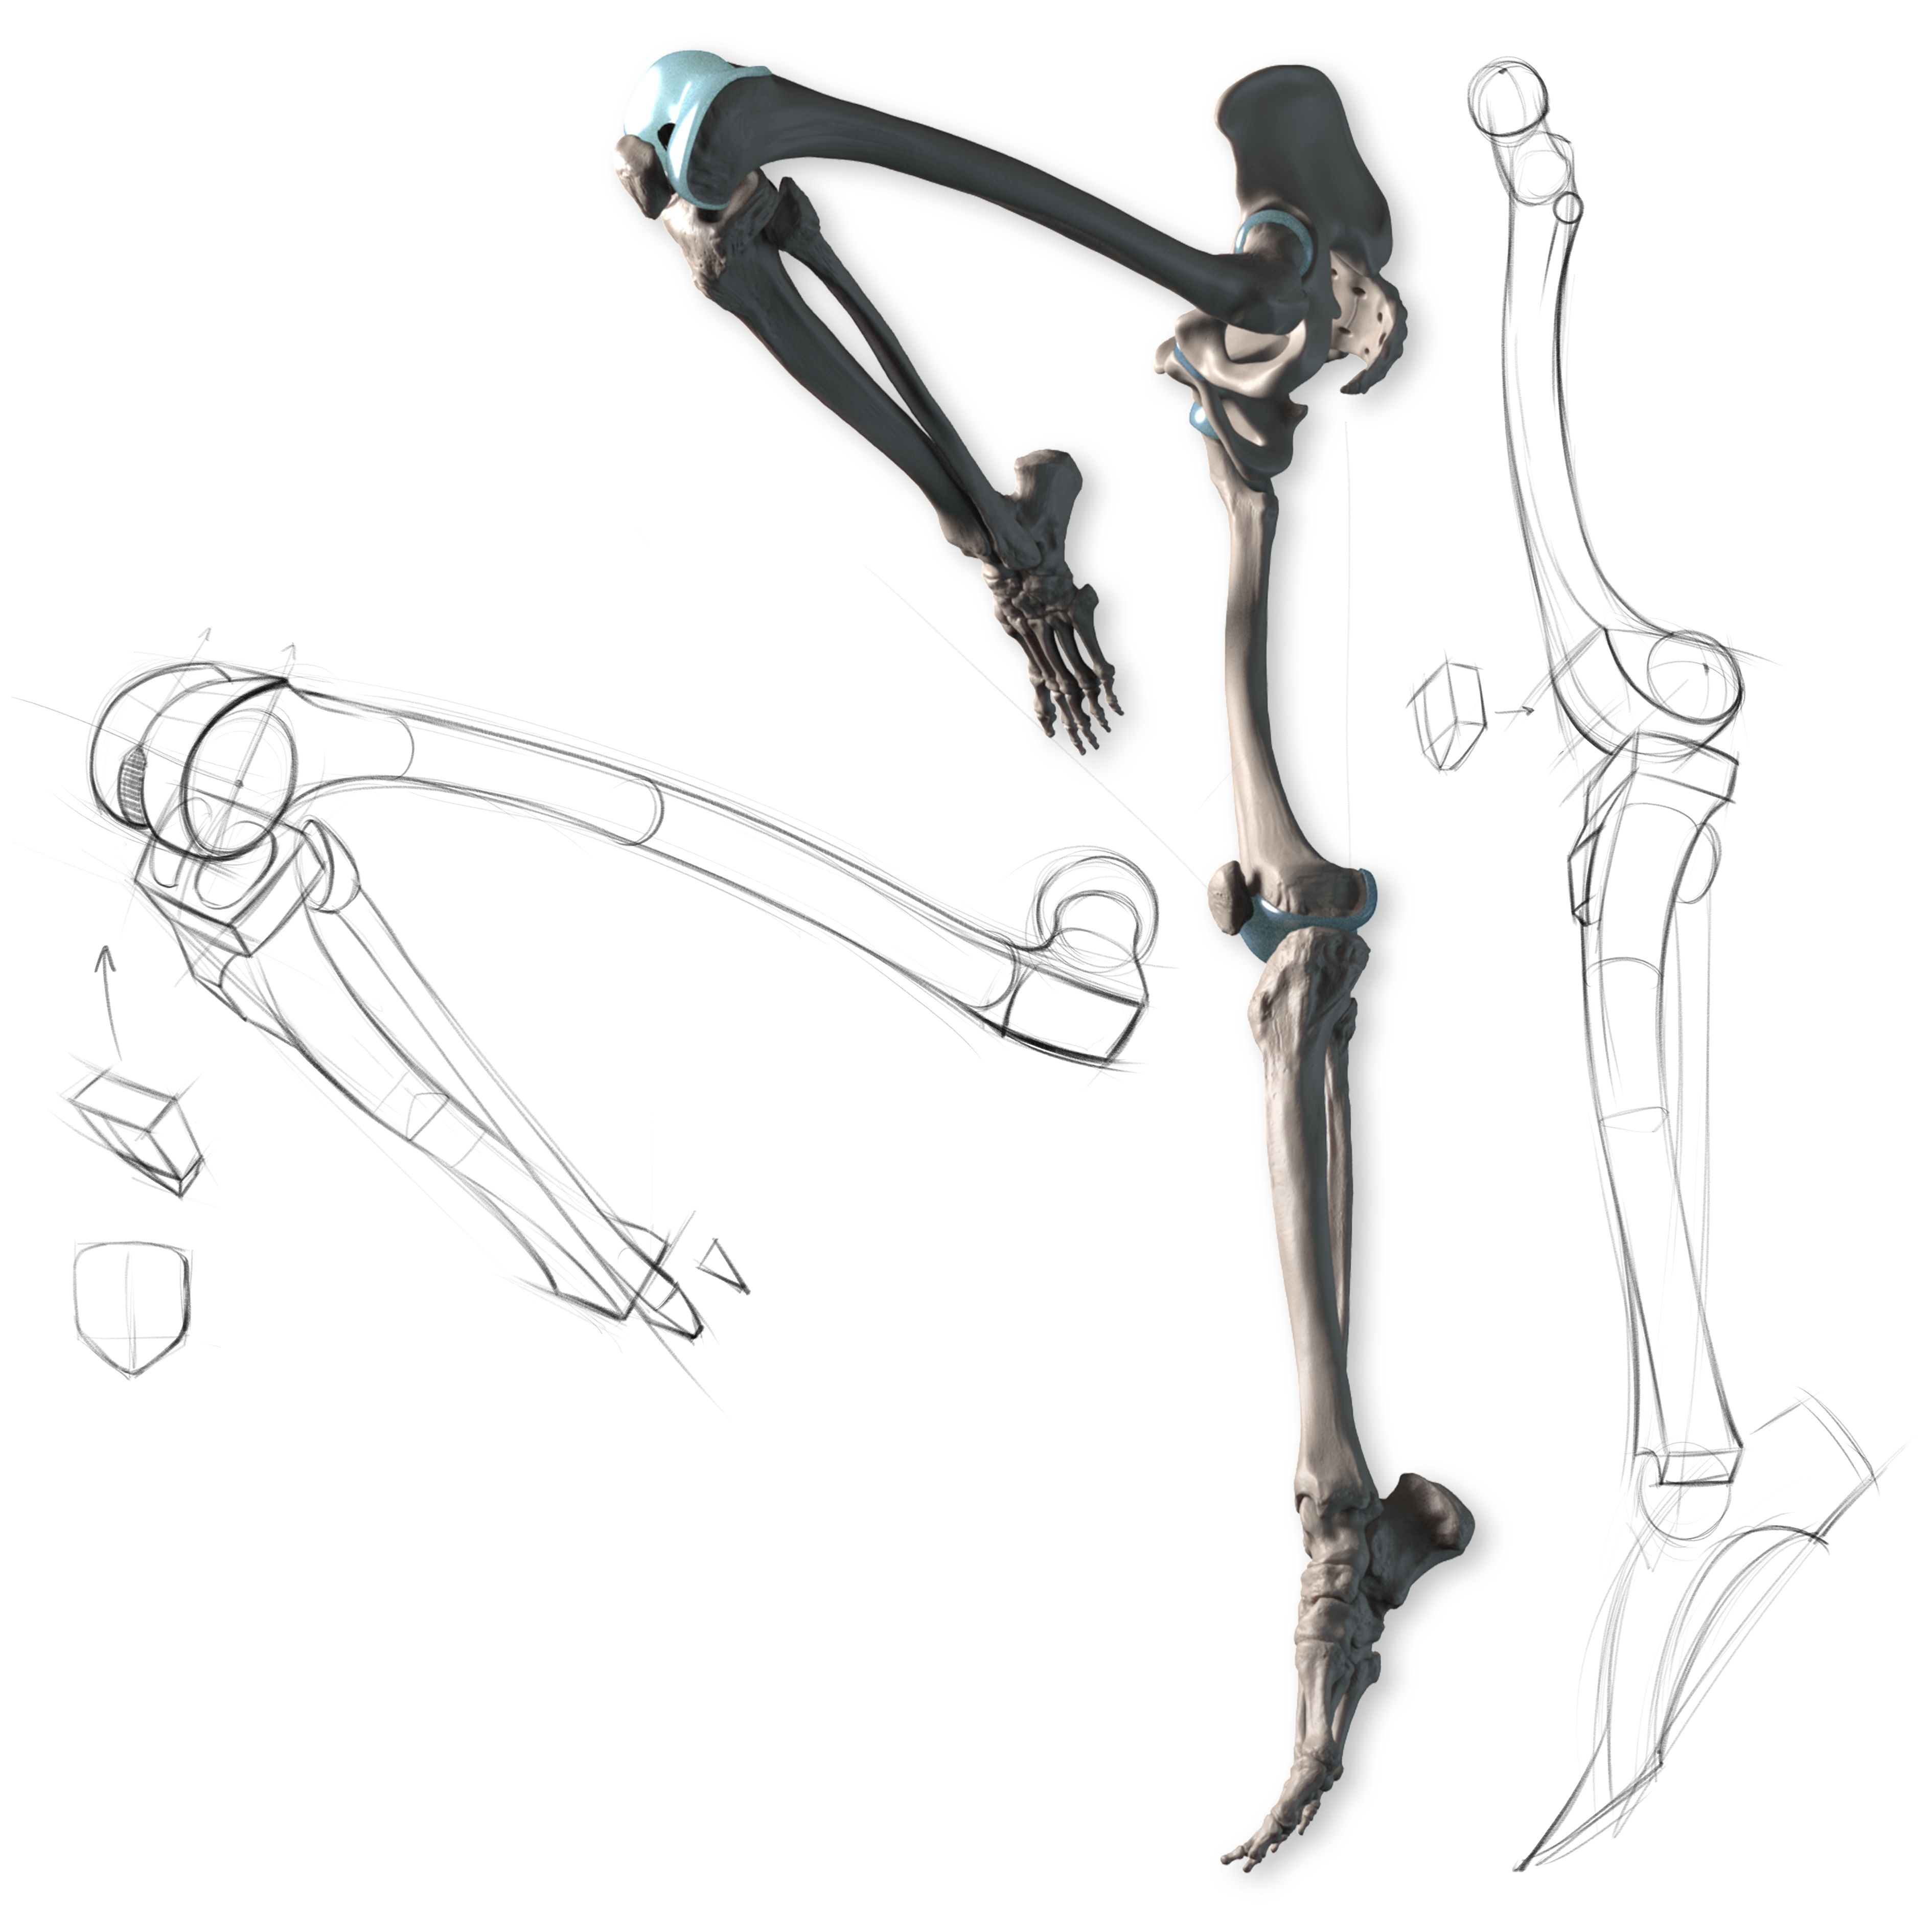 Anatomy of the Human Body for Artists Course  skechs  Pinterest